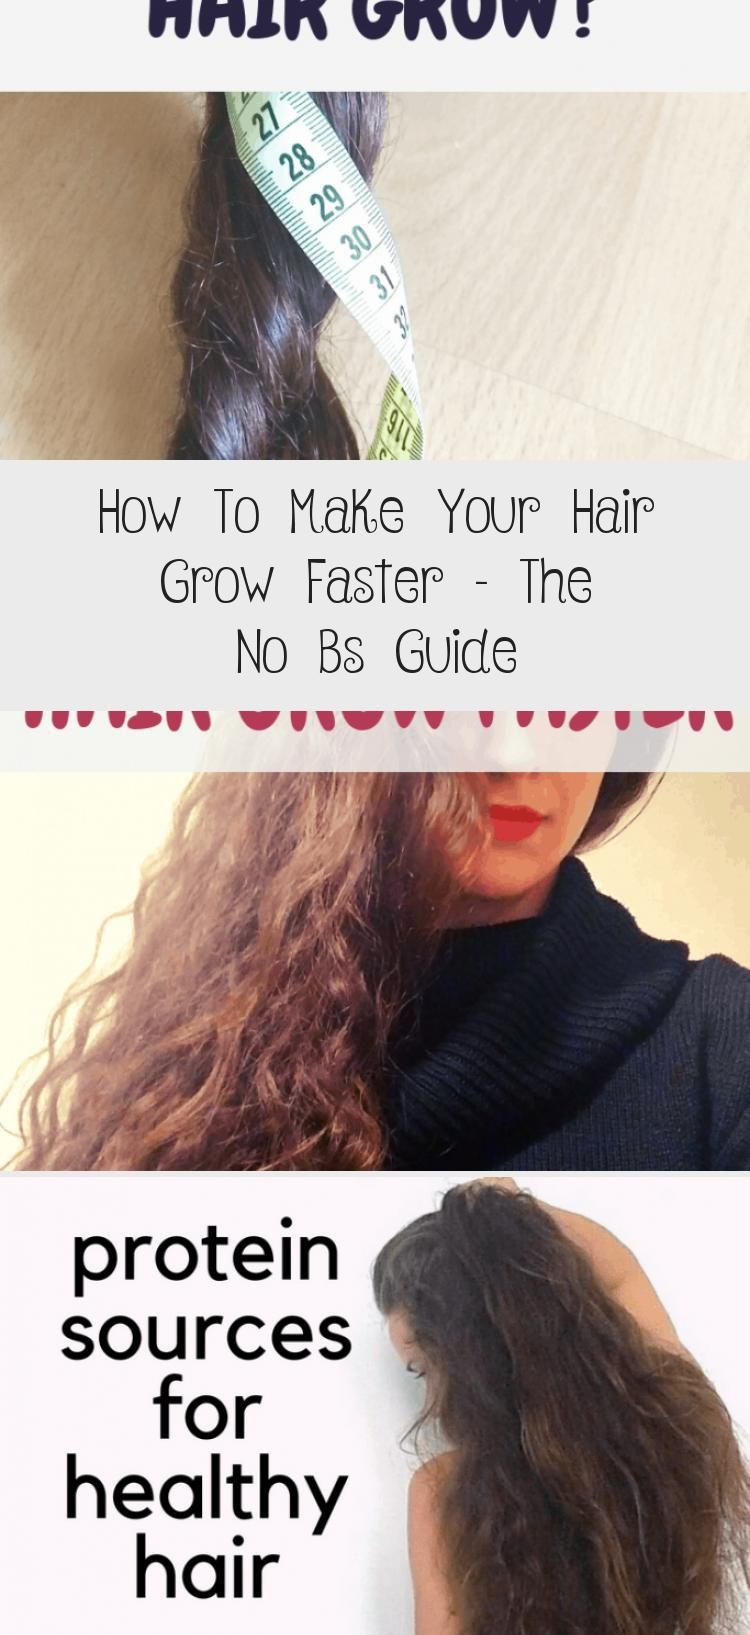 Want Some Real Tips For Faster Hair Growth This Is Your Guide Sulfur8hairgrowth Hairgrowthtransformation Hairgr In 2020 Fast Hairstyles Grow Hair Faster Grow Hair